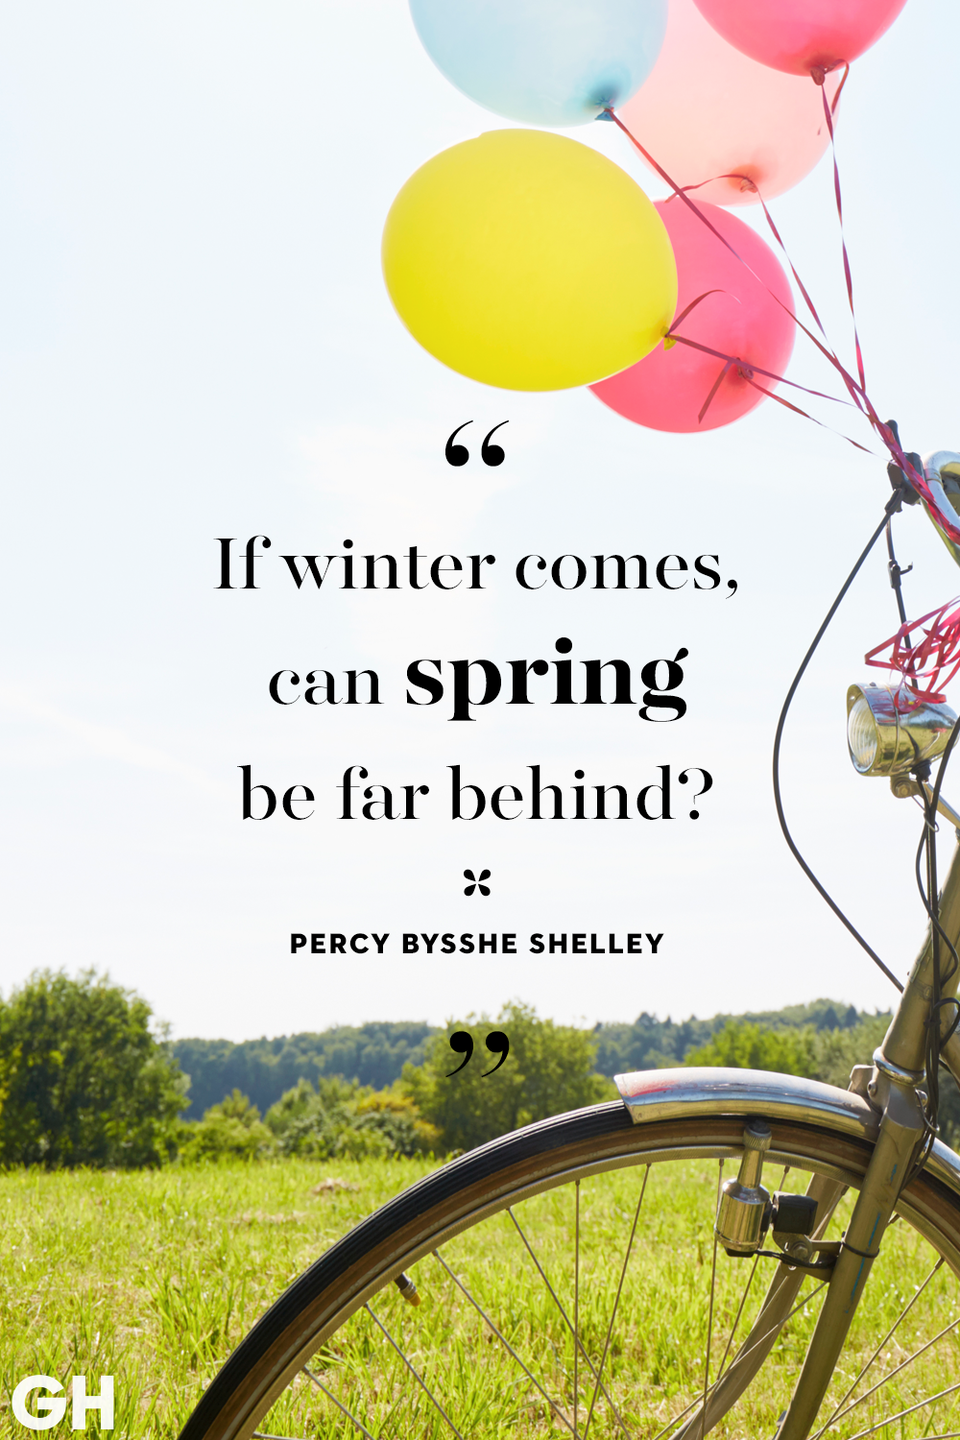 <p>If winter comes, can spring be far behind?</p>